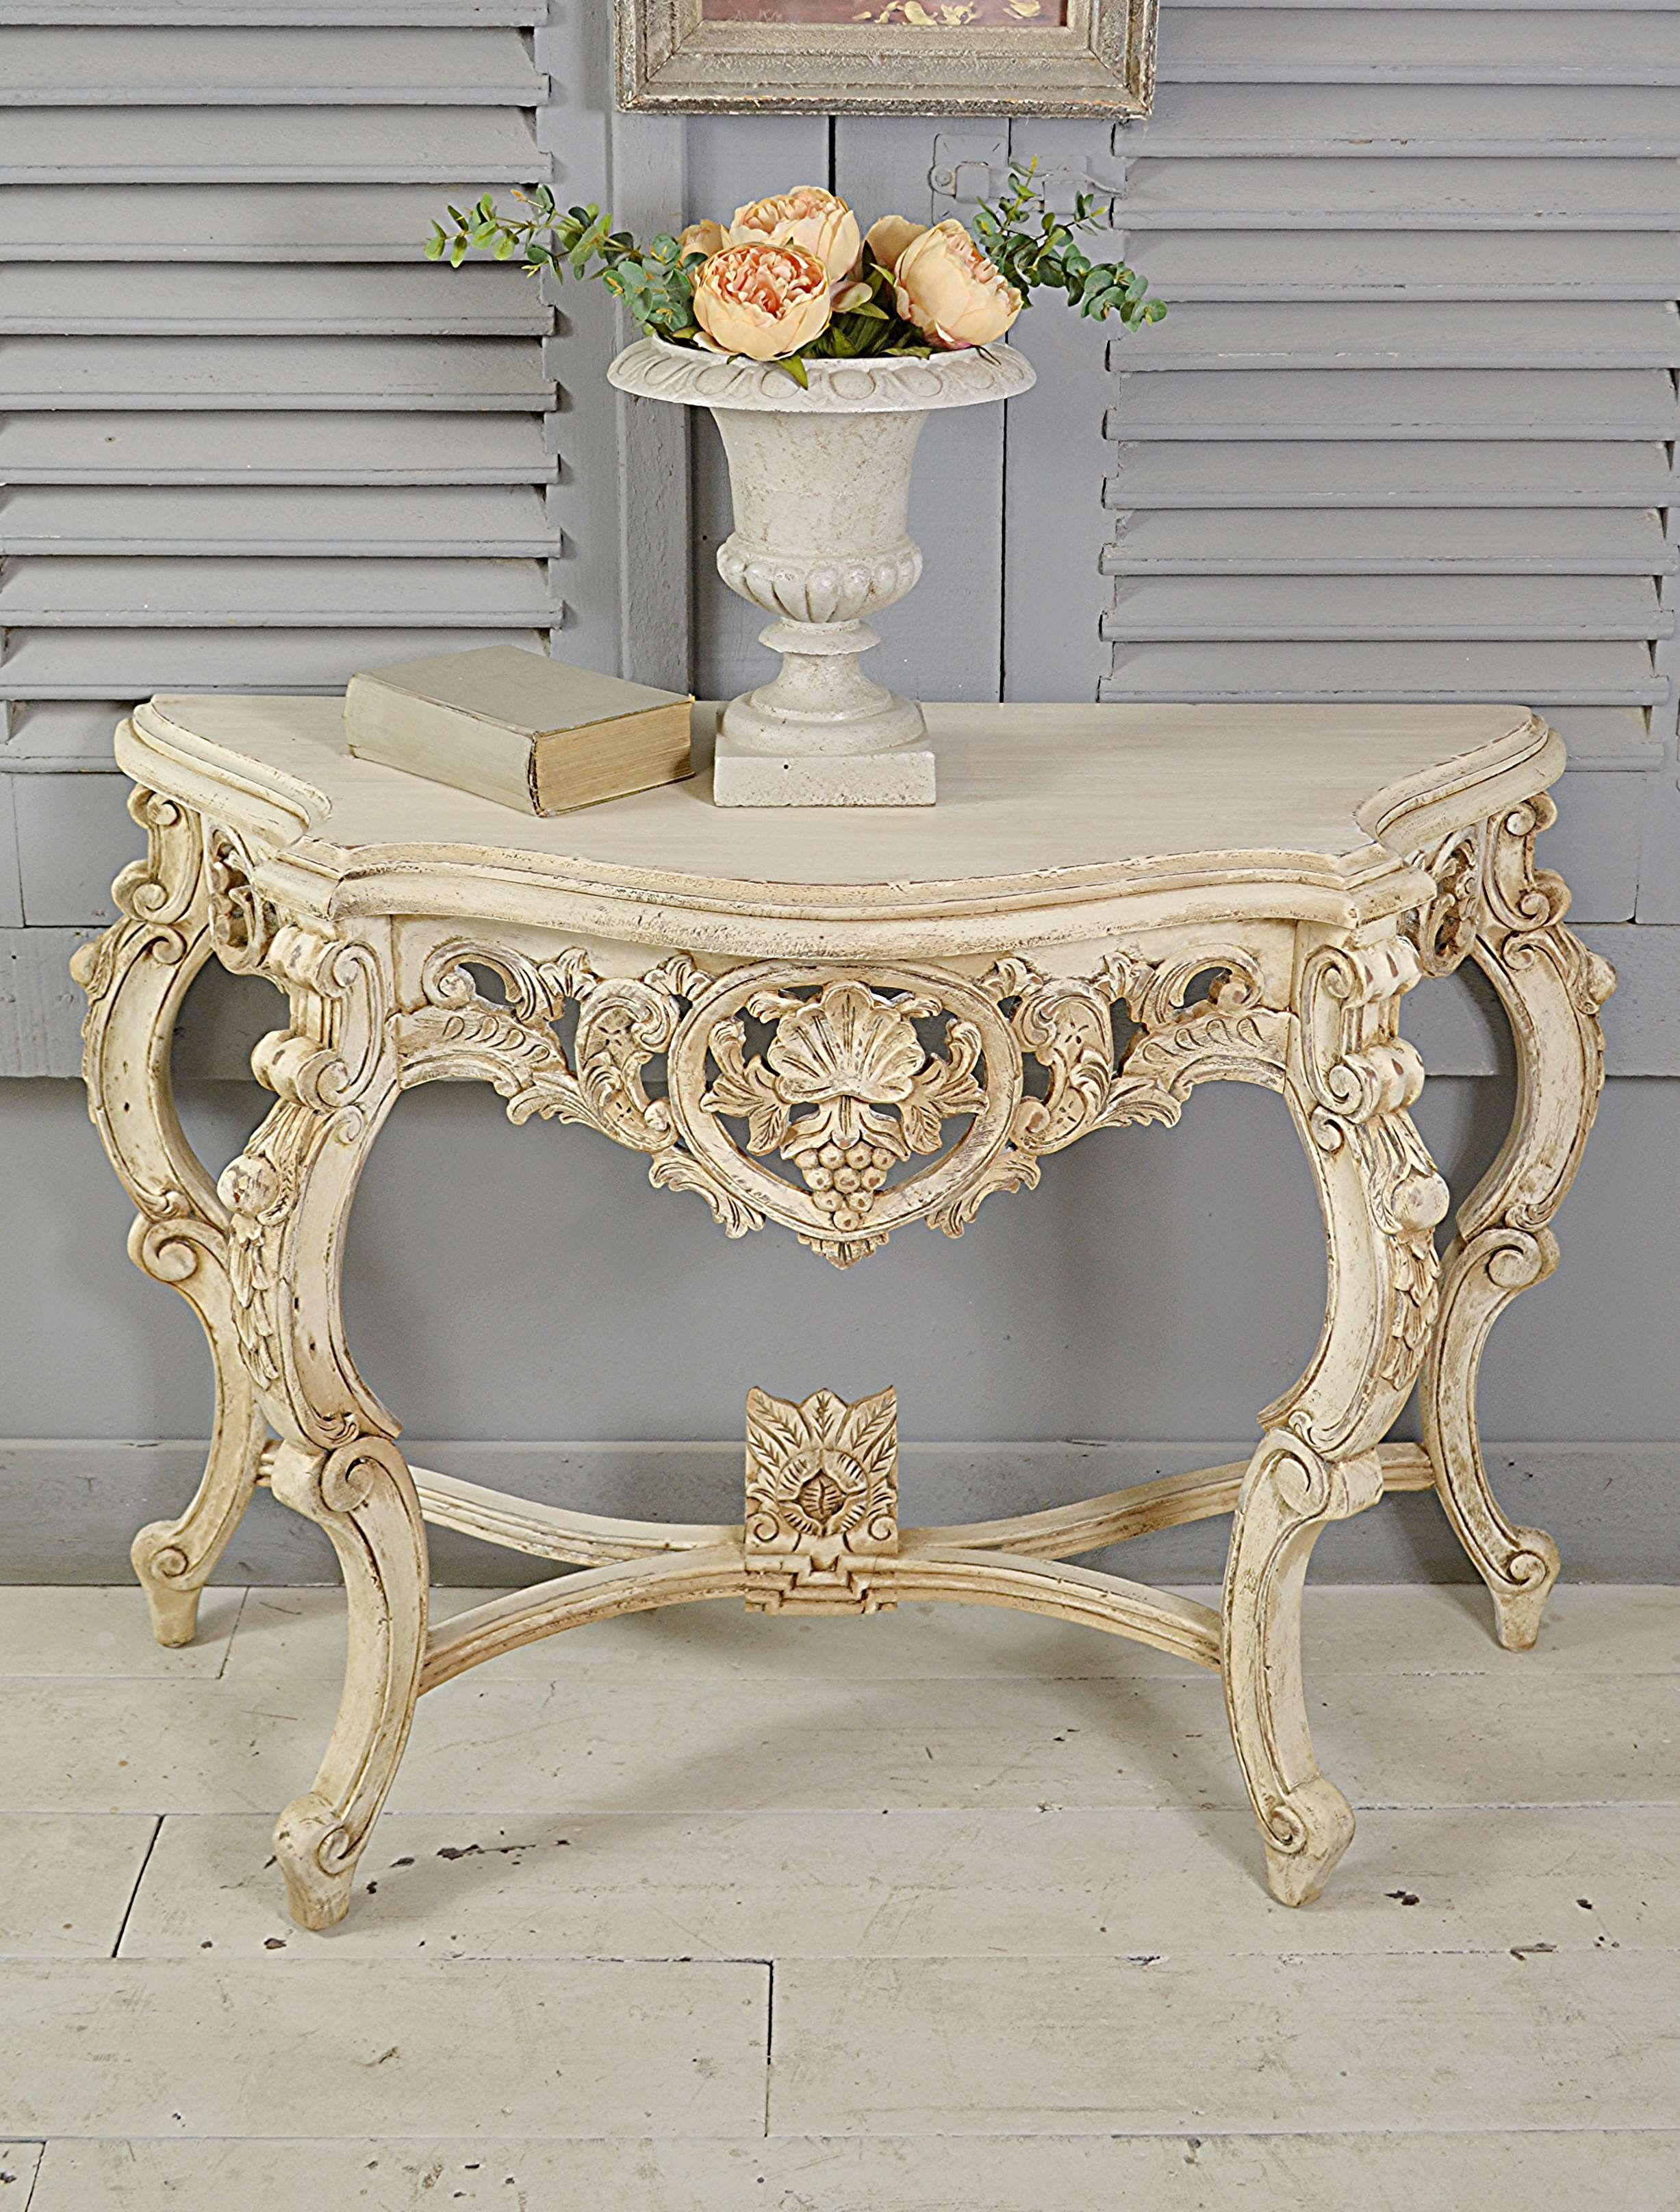 Letstrove Stunning Ornate French Console Table In Original White